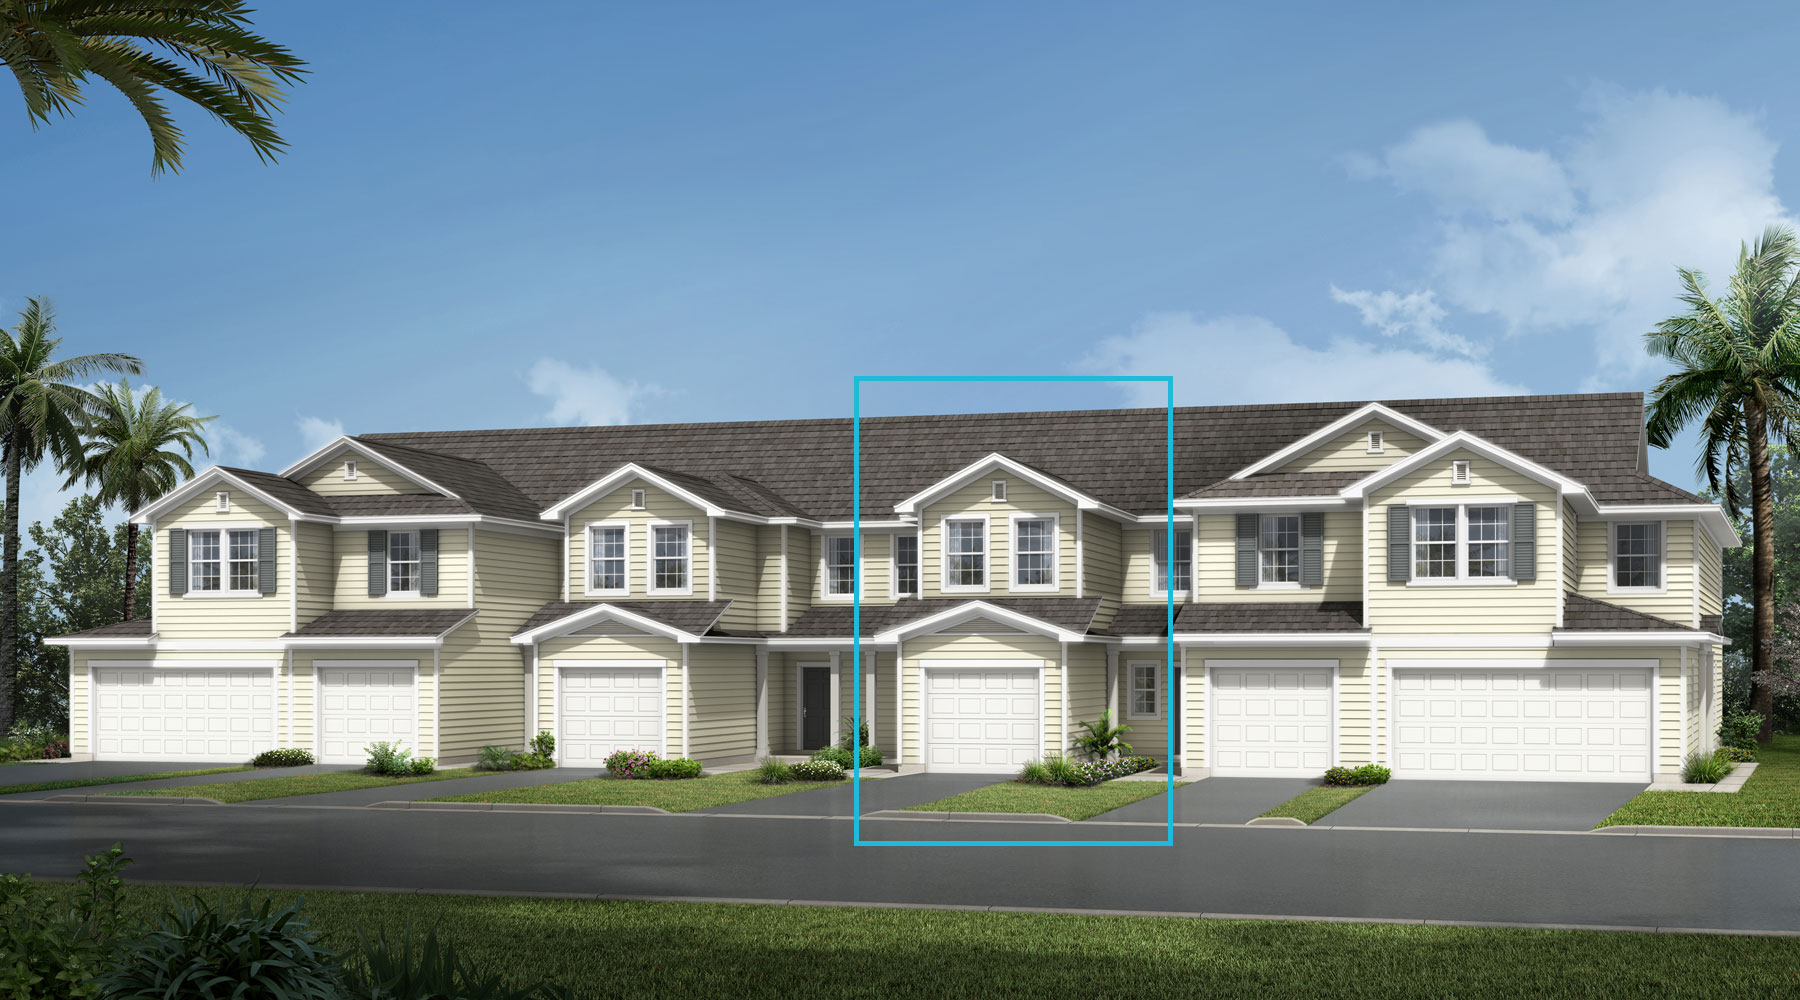 Cove Plan elevationlowcountry_wellscreek_cove at Wells Creek in Jacksonville Florida by Mattamy Homes